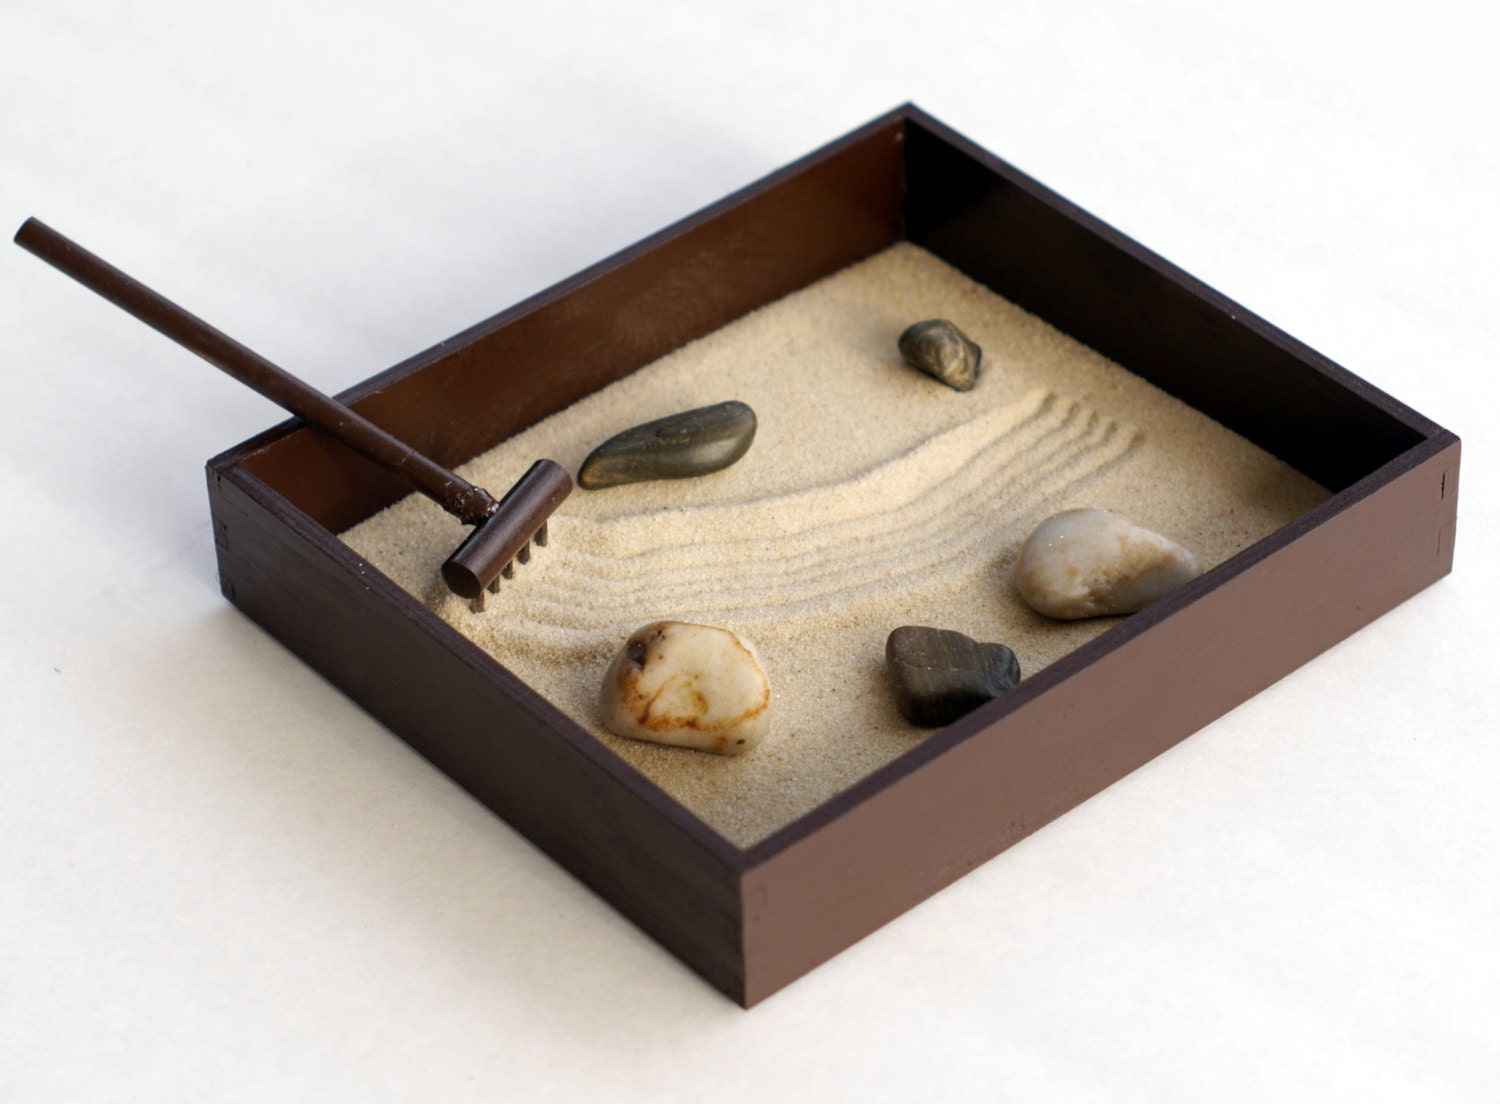 Zen Garden Tabletop Desk Accessories Tabletop Decor Office